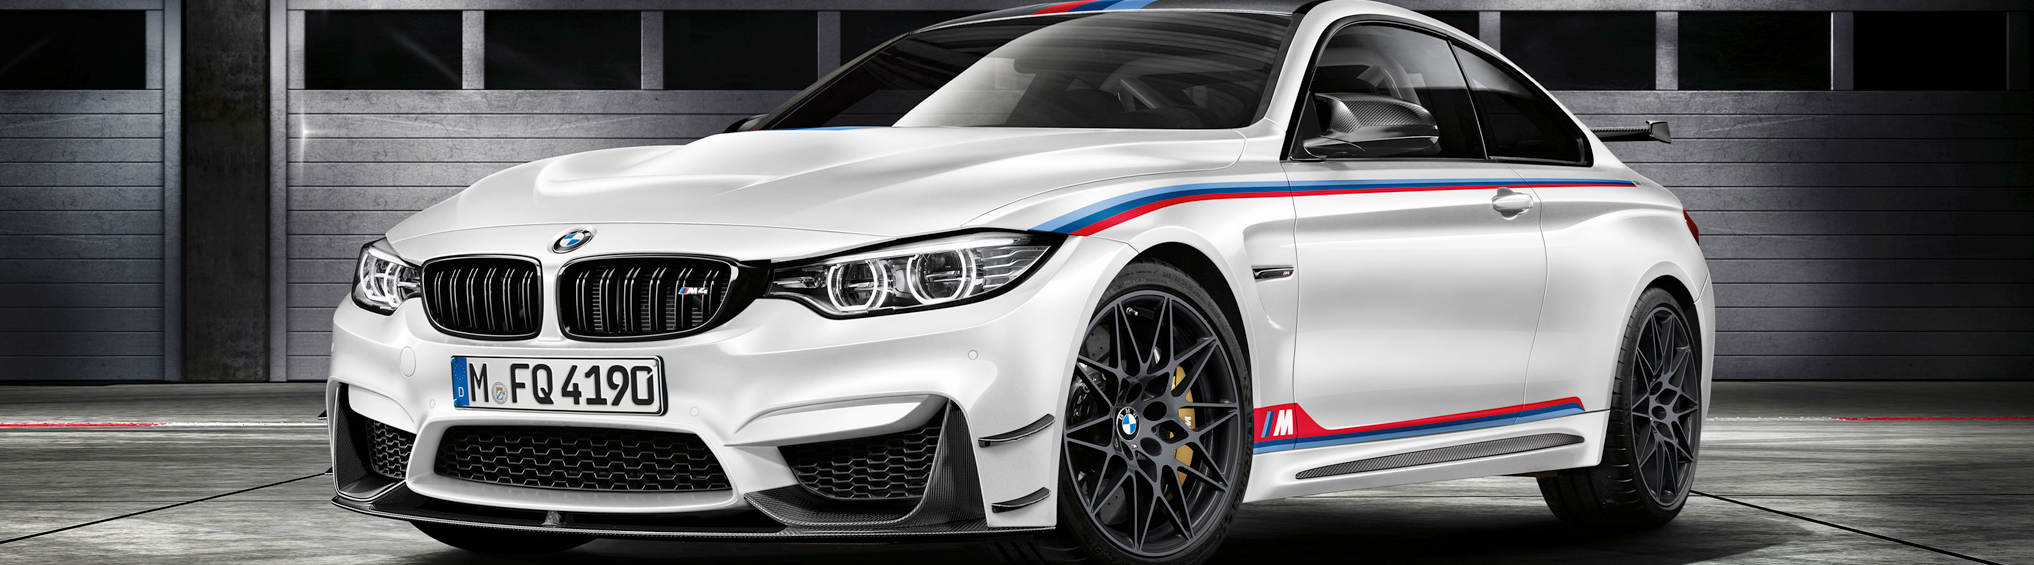 BMW is celebrating their dominance in the German DTM racing series with the BMW M4 DTM Champion Edition. Only 200 examples of the M4 DTM Champion Edition will be made with each vehicle proudly displaying a very colorful paint scheme along with a serious boost in performance.